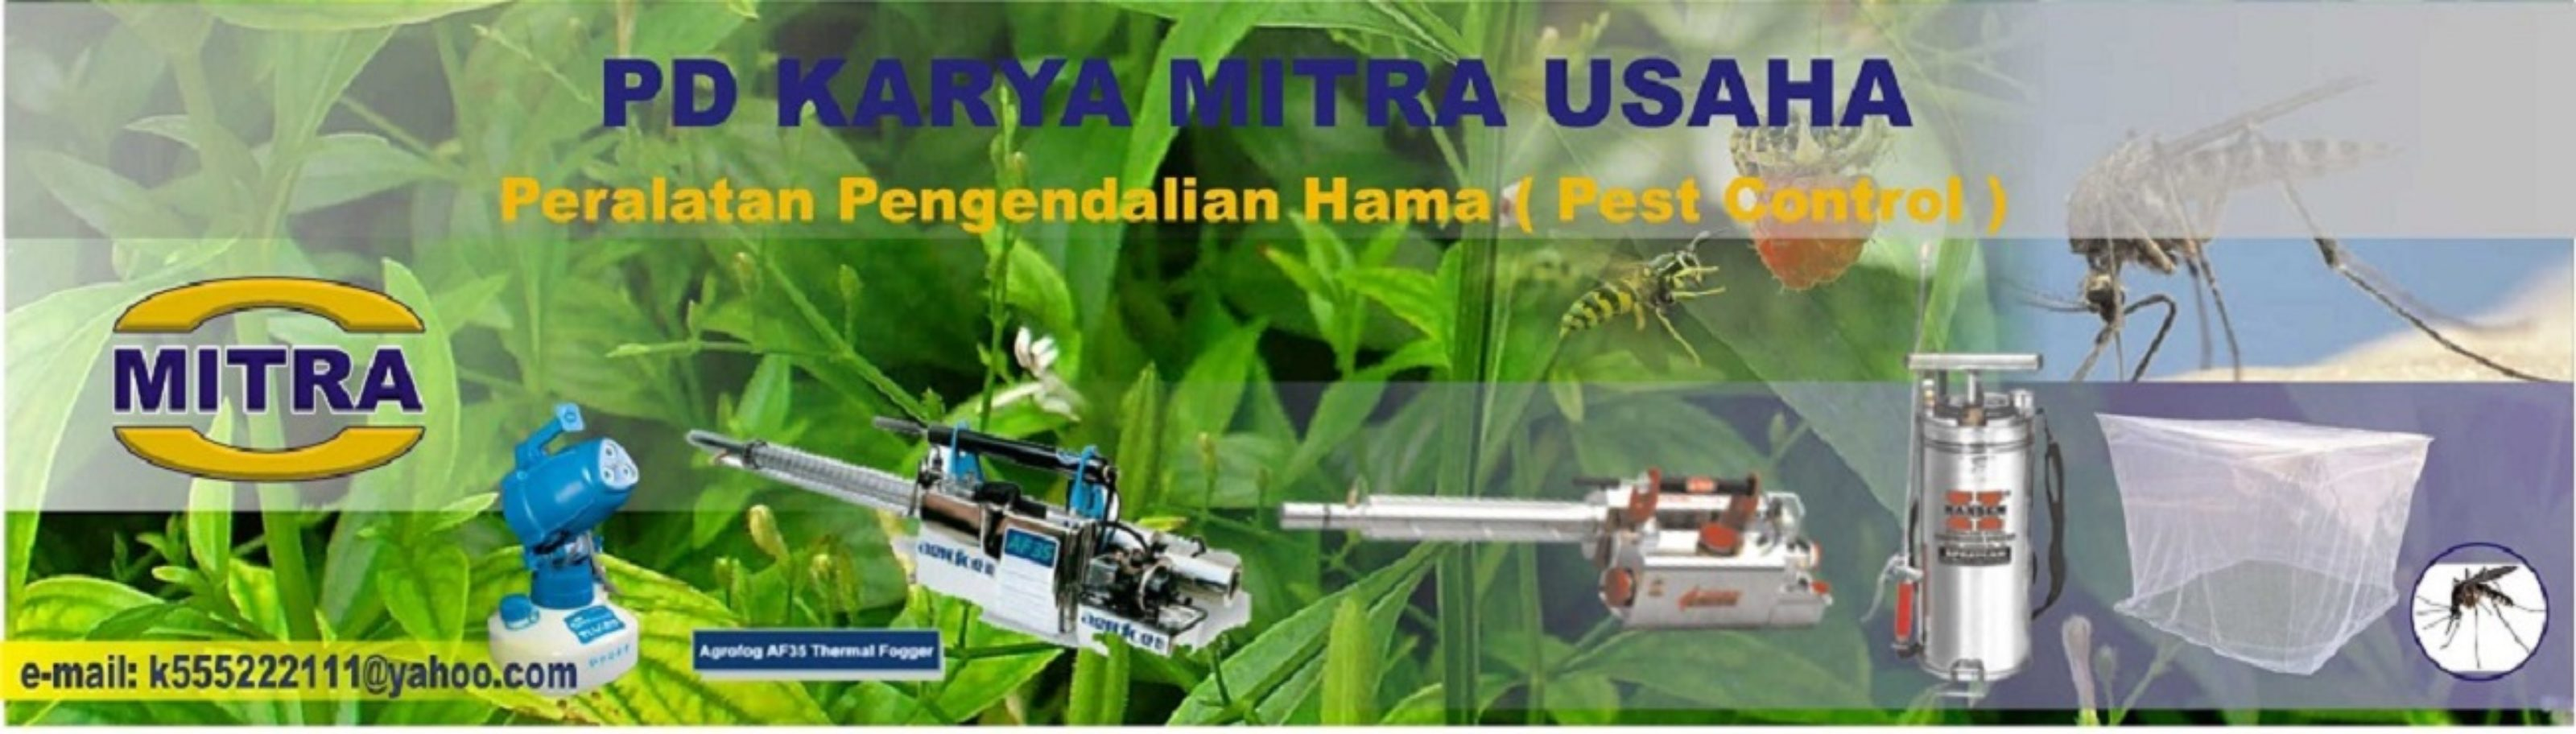 Mesin Fogging, Mist Blower, Sprayer – PD. Karya Mitra Usaha